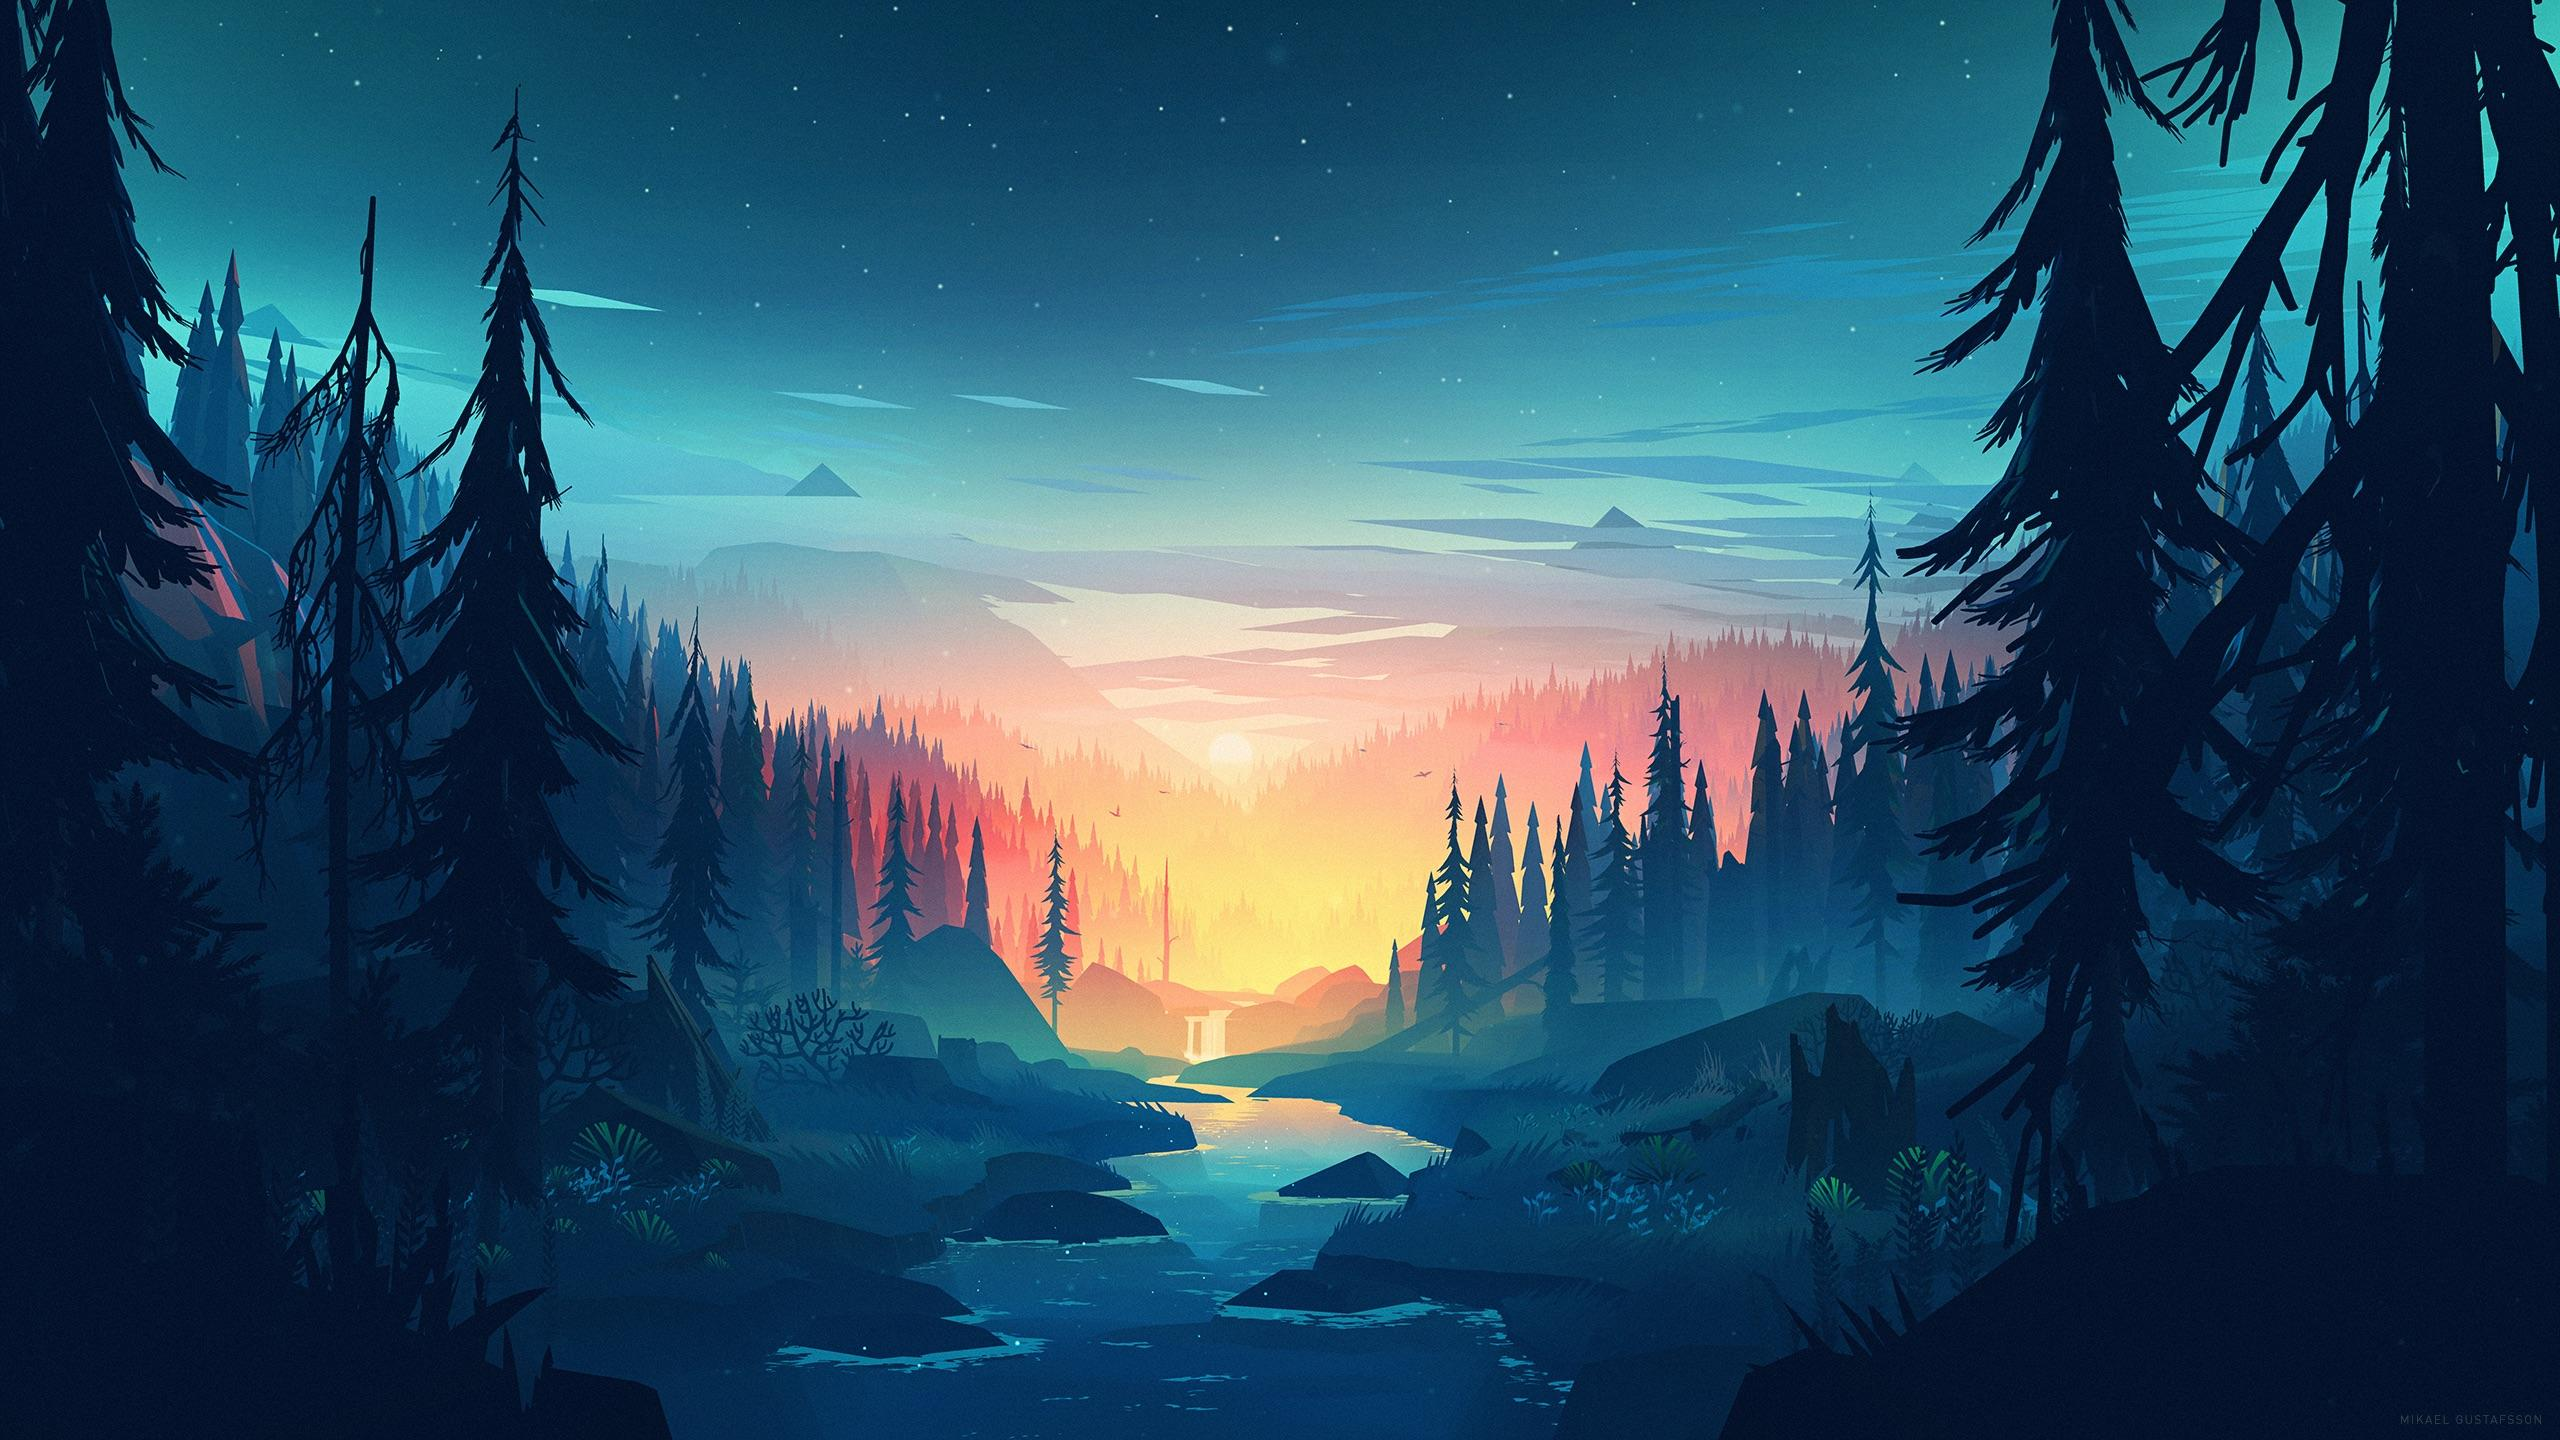 Dusk Forest Wallpapers   Top Free Dusk Forest Backgrounds ...